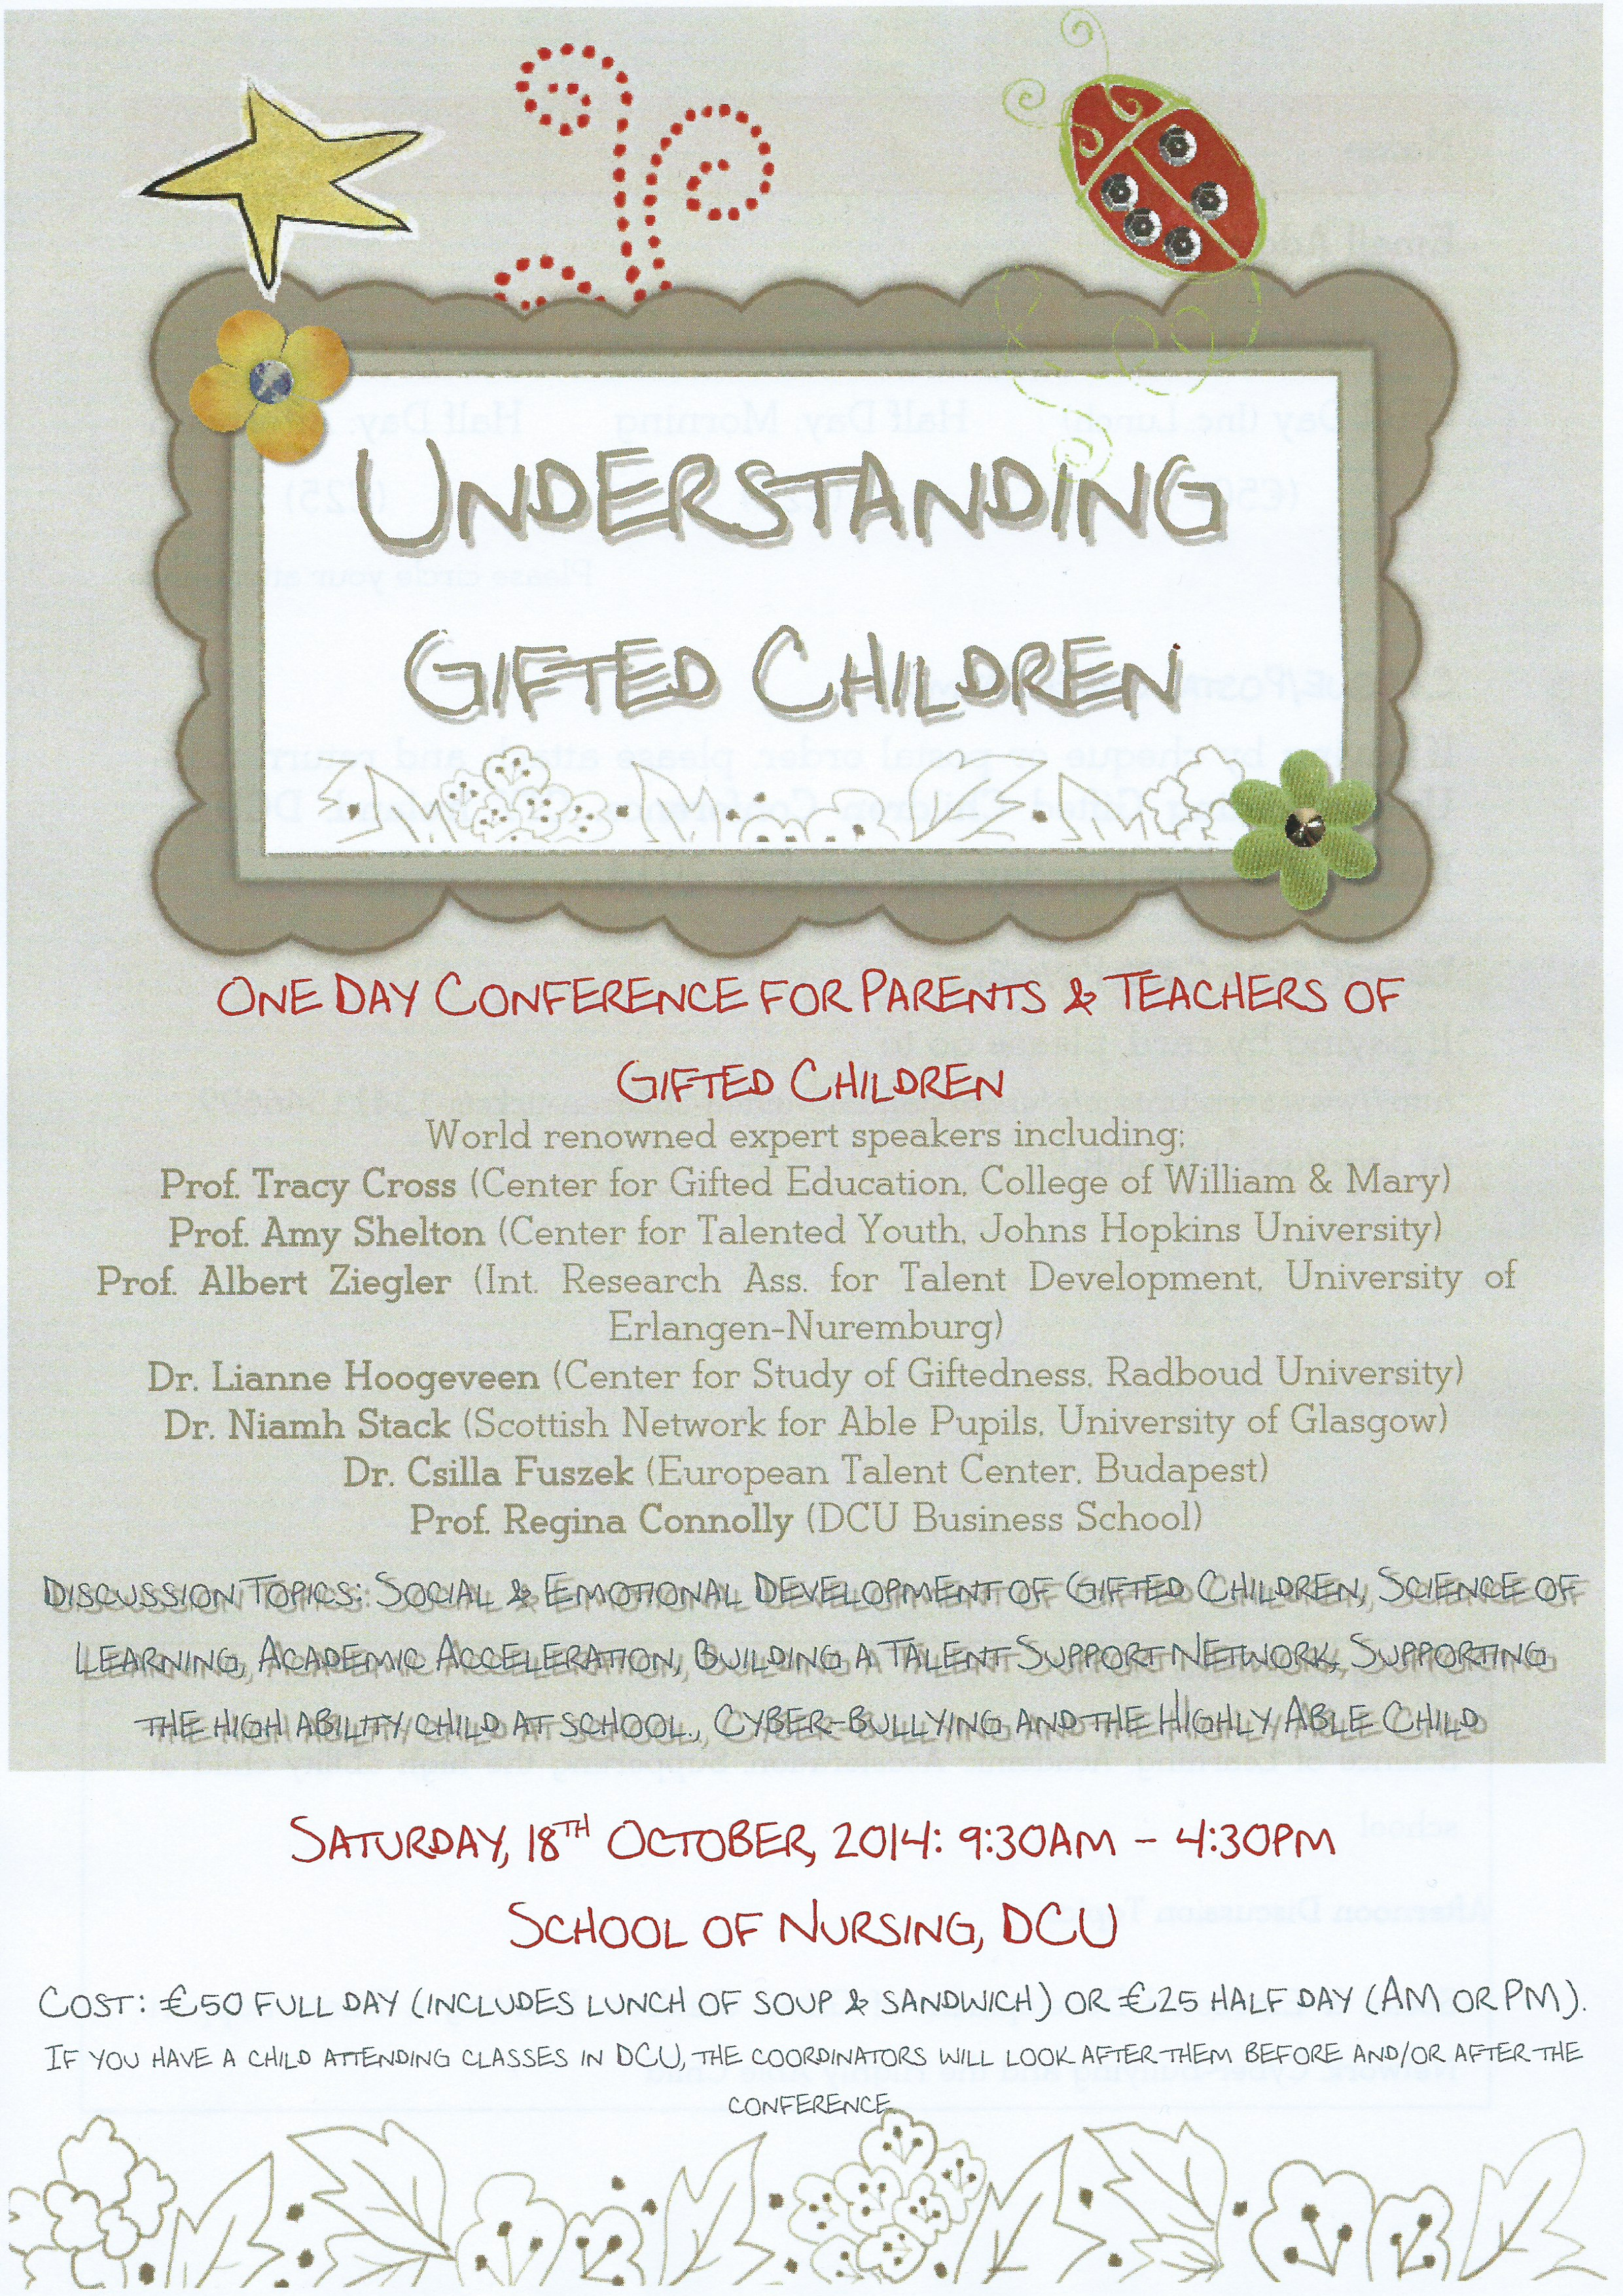 Guiding Gifted Children conference CTYI